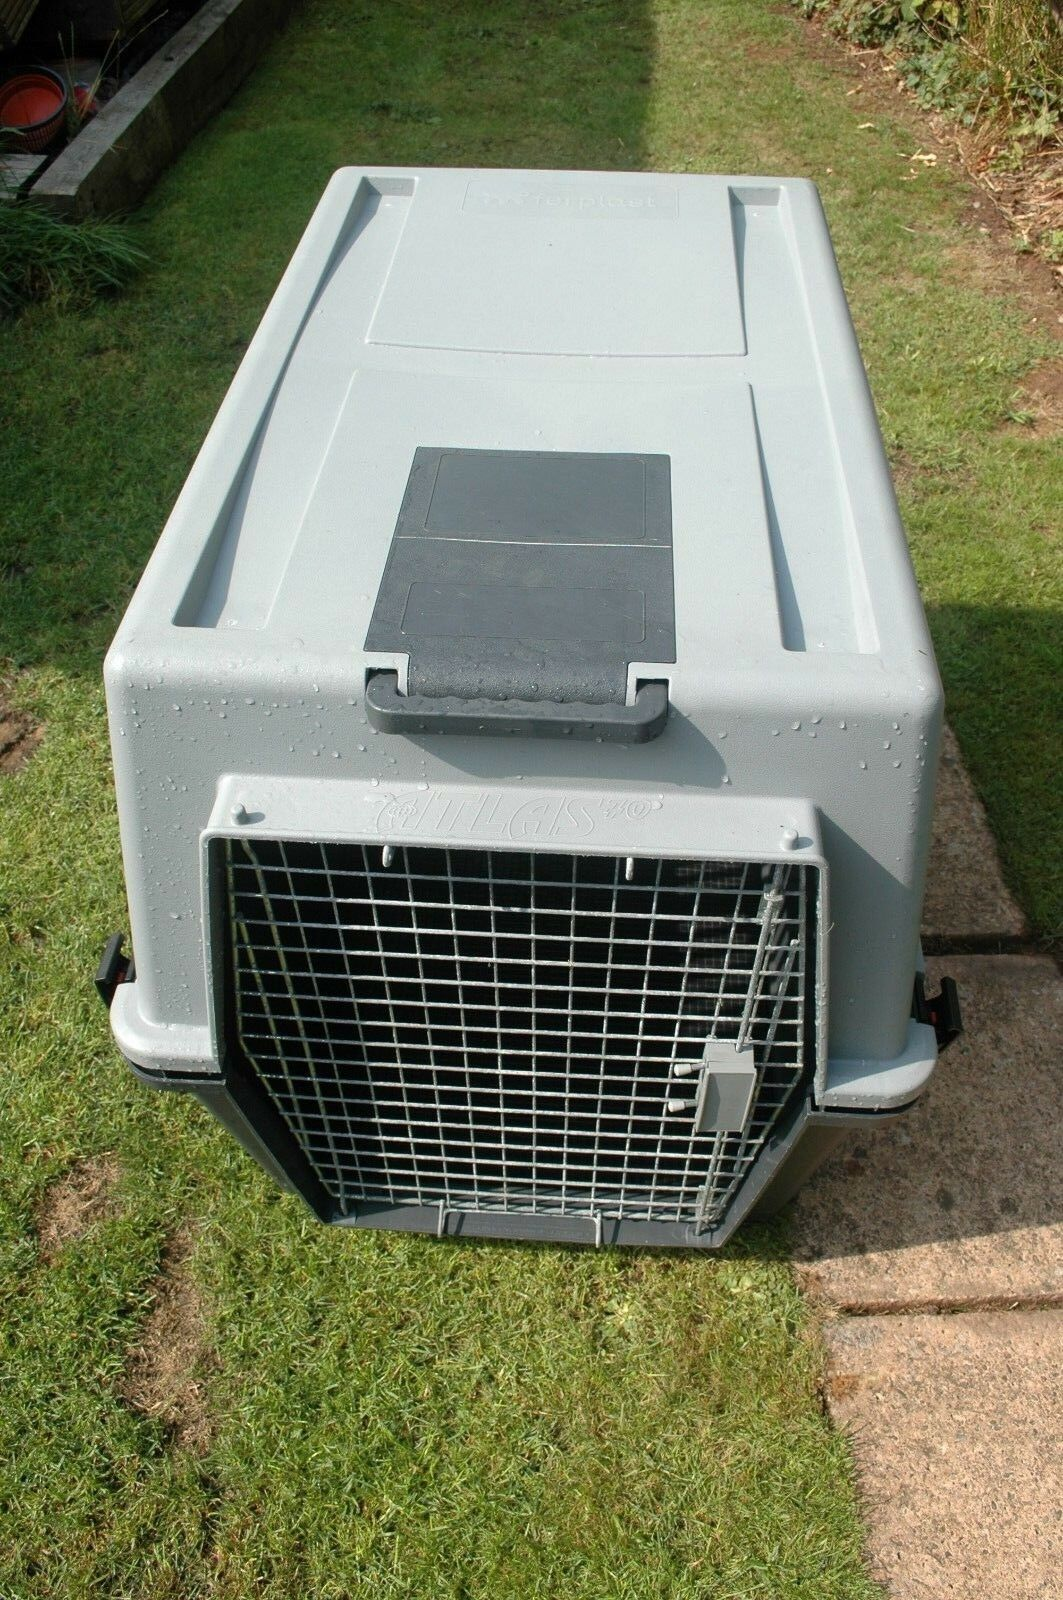 Atlas 70 Large Cage Kennel For Dog Transportation Or Puppy Training German Shep